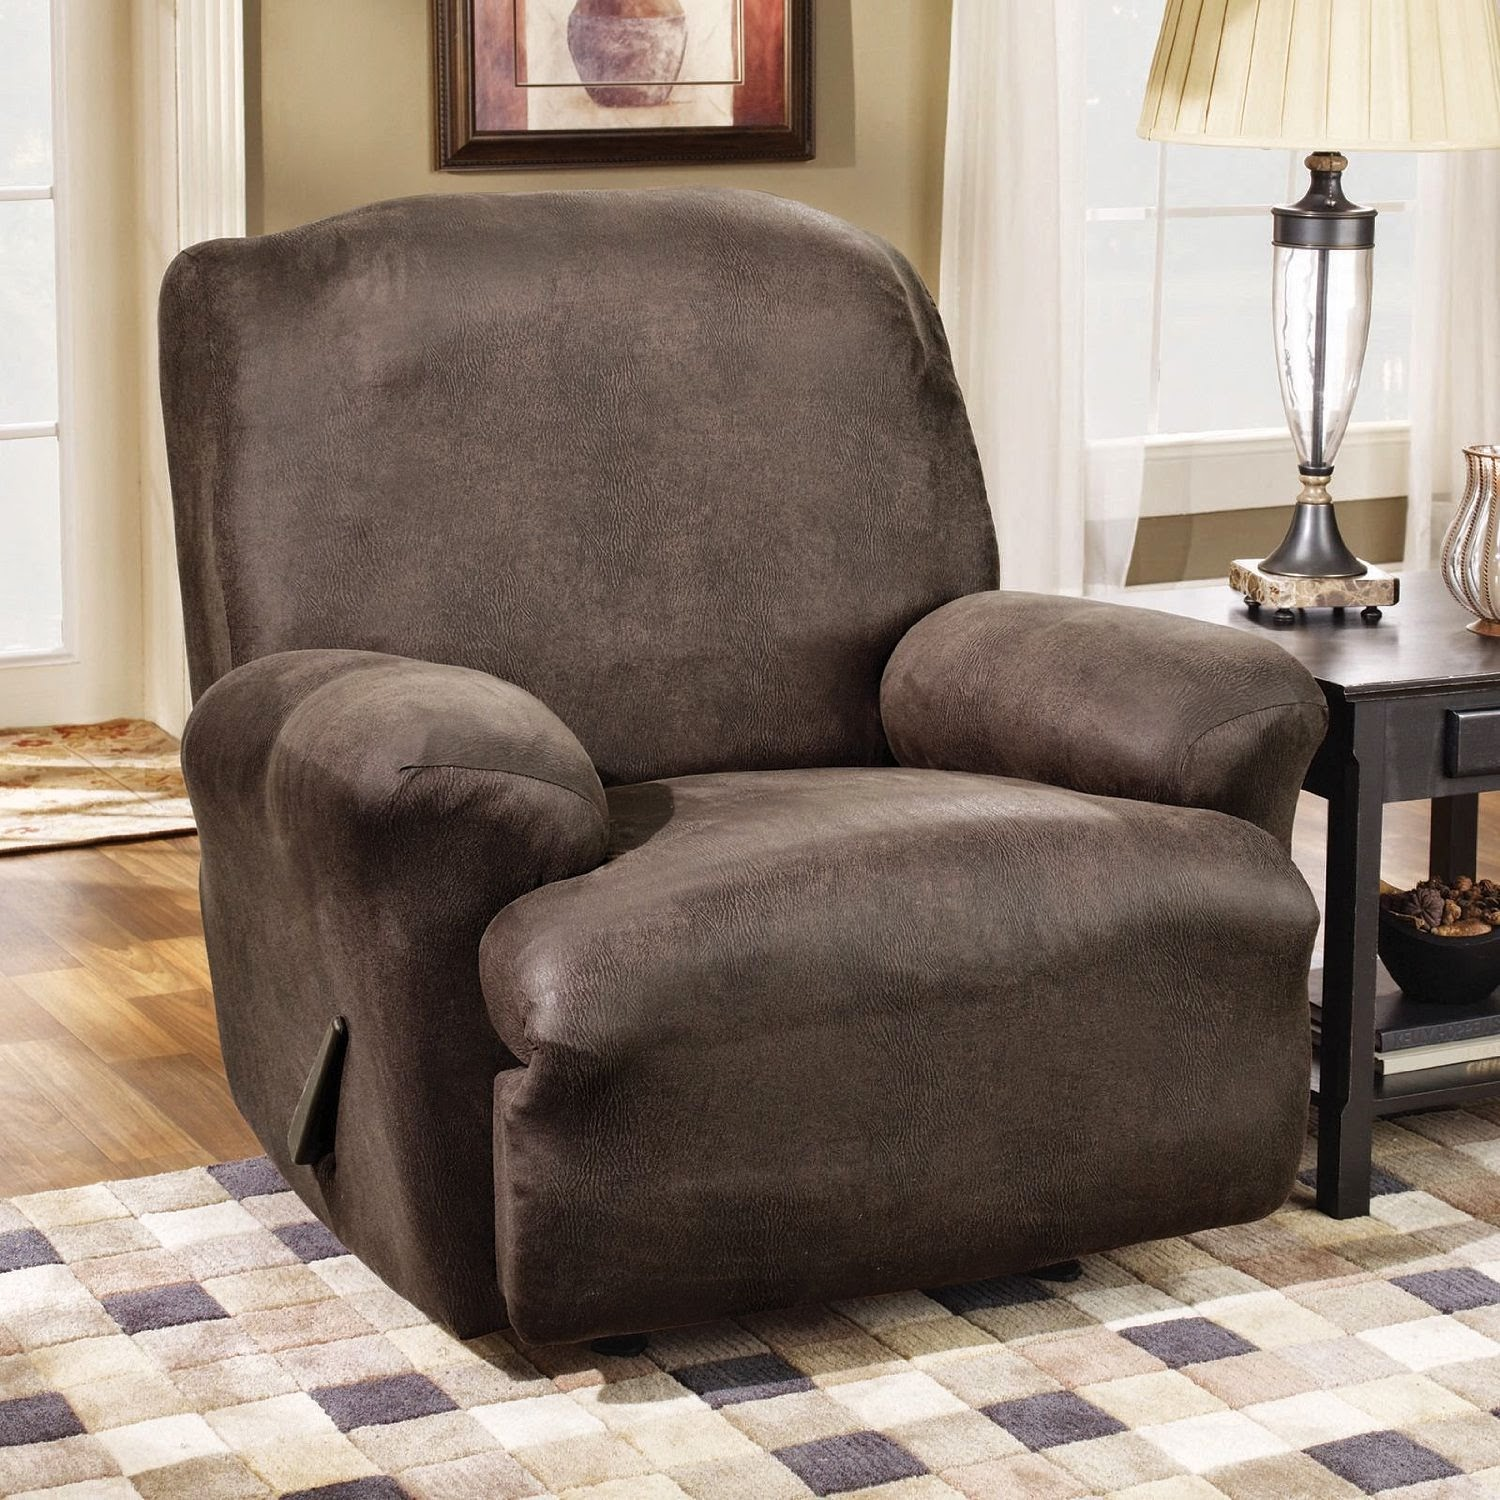 Sure Fit Recliner Slipcovers Leather & Couch Slipcovers For Reclining Sofa - Laura Williams islam-shia.org